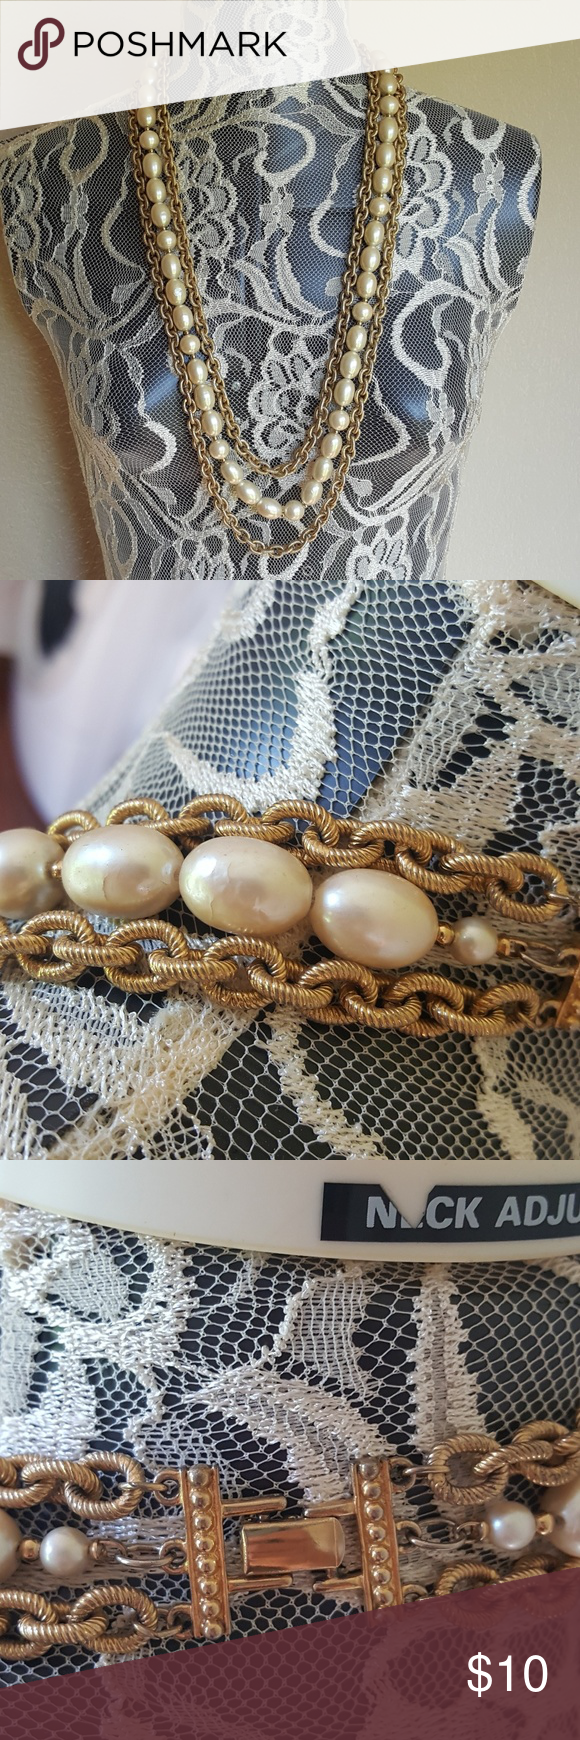 Layered gold chains and beaded necklace. Layered necklace Not adjustable  Very cute and in great condition Jewelry Necklaces